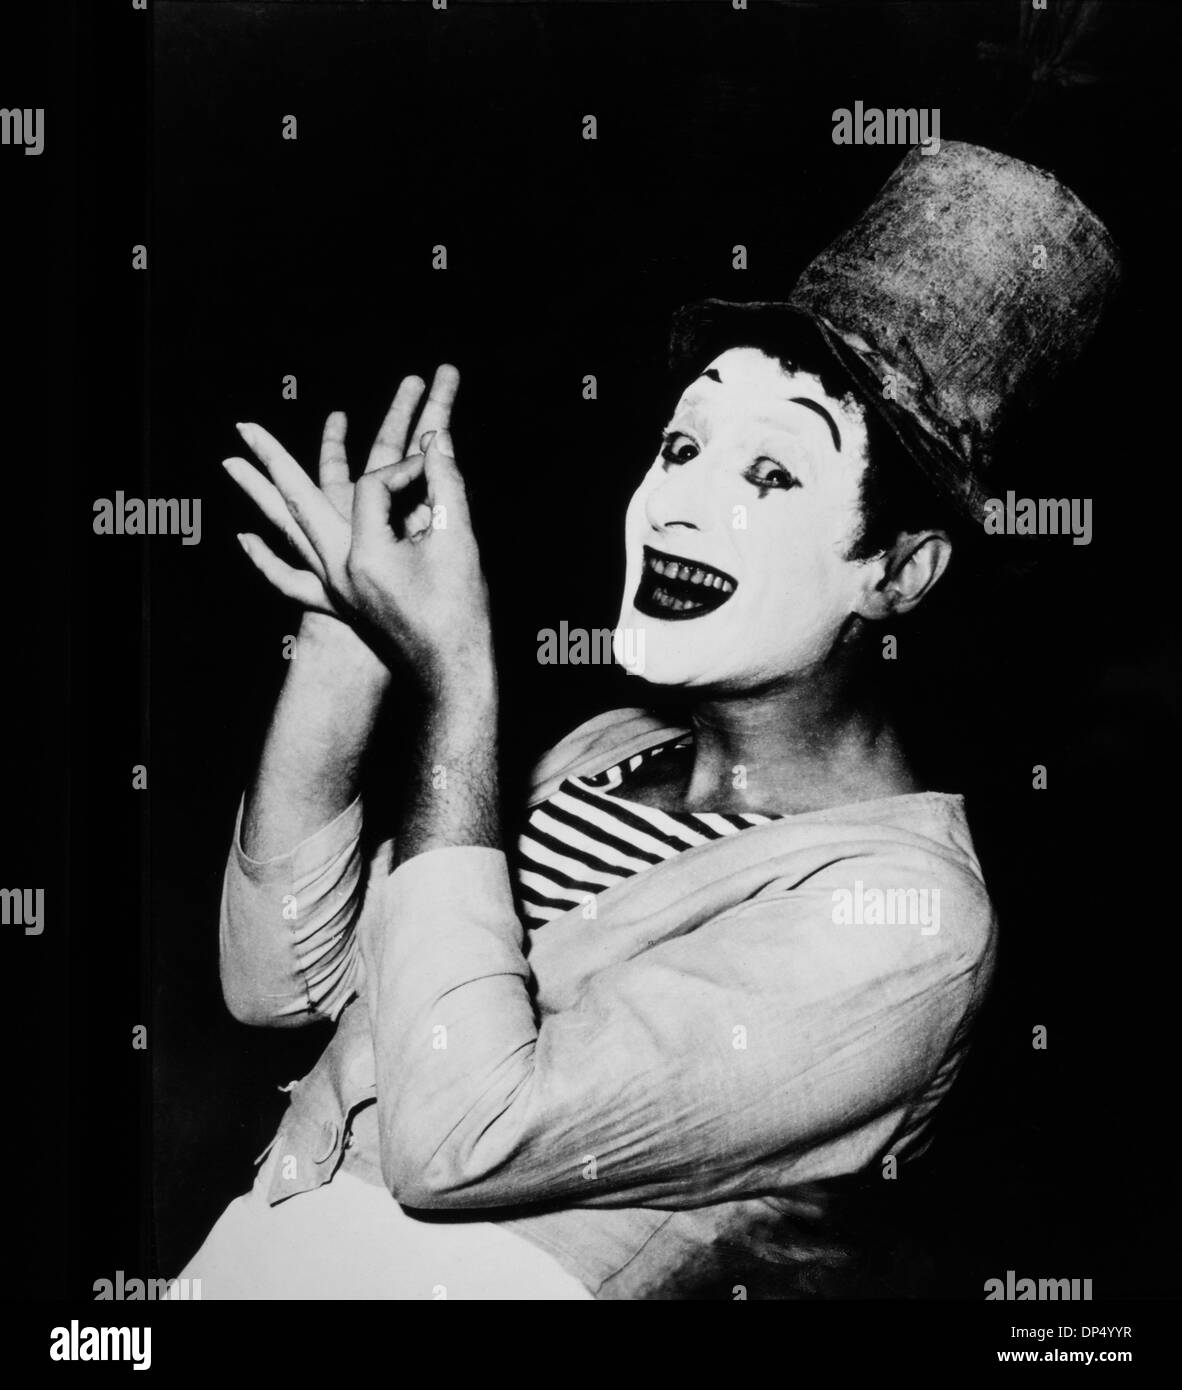 Marcel Marceau (1923-2007), French Actor and Mime, Top Hat and White Makeup, Portrait, circa 1955 Stock Photo